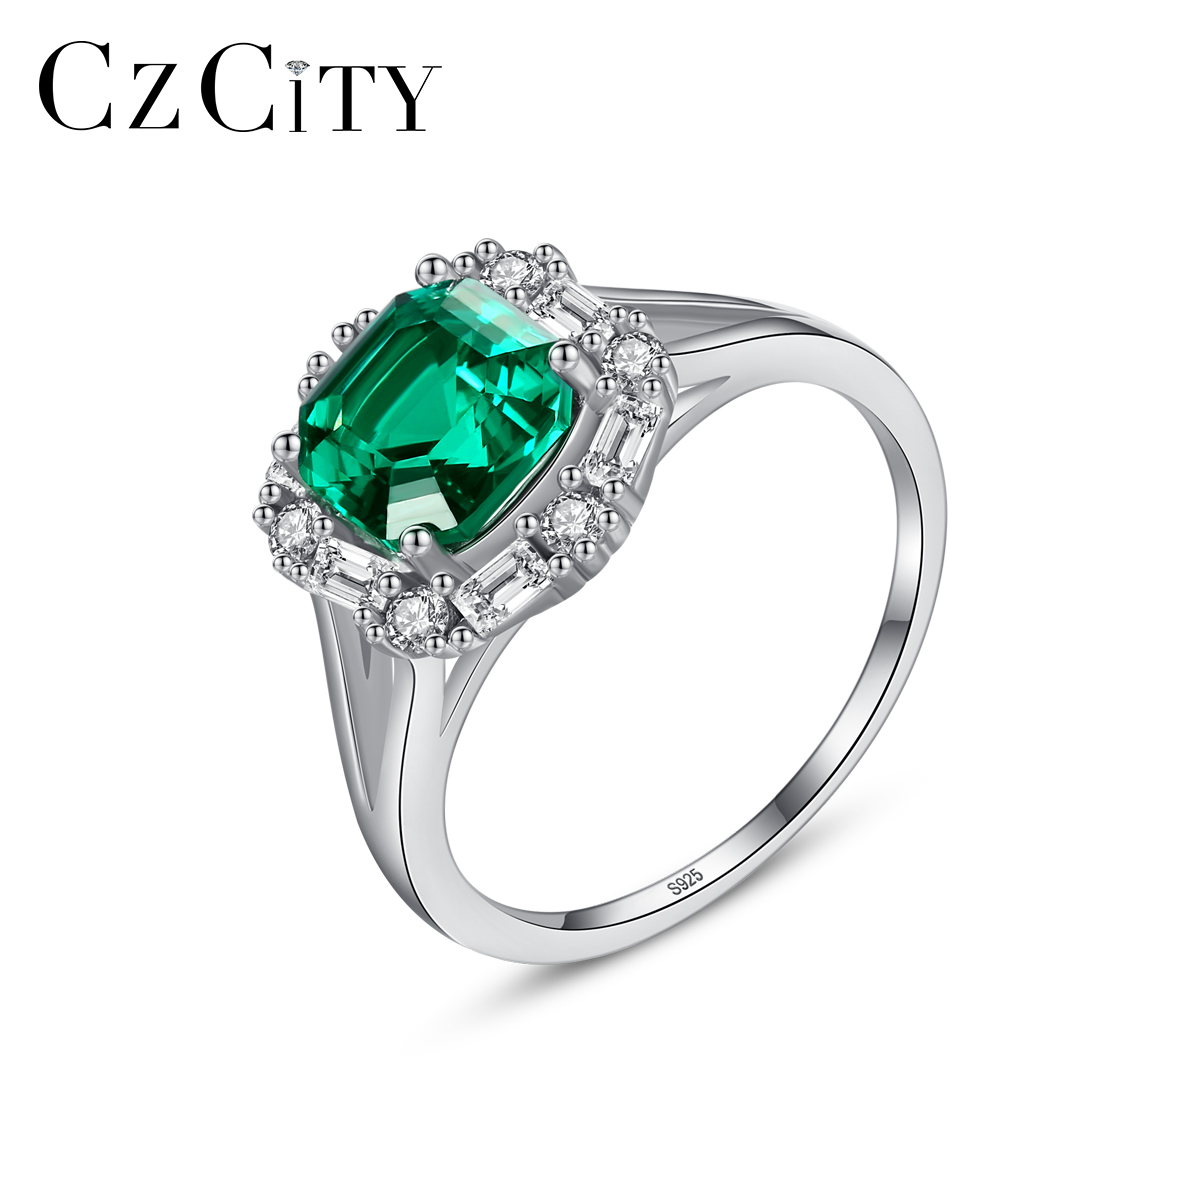 CZCITY High Quality Green Gemstone Engagement Rings for Women Wedding Party 925 Sterling Silver Finger Ring Fine Jewelry SR0323